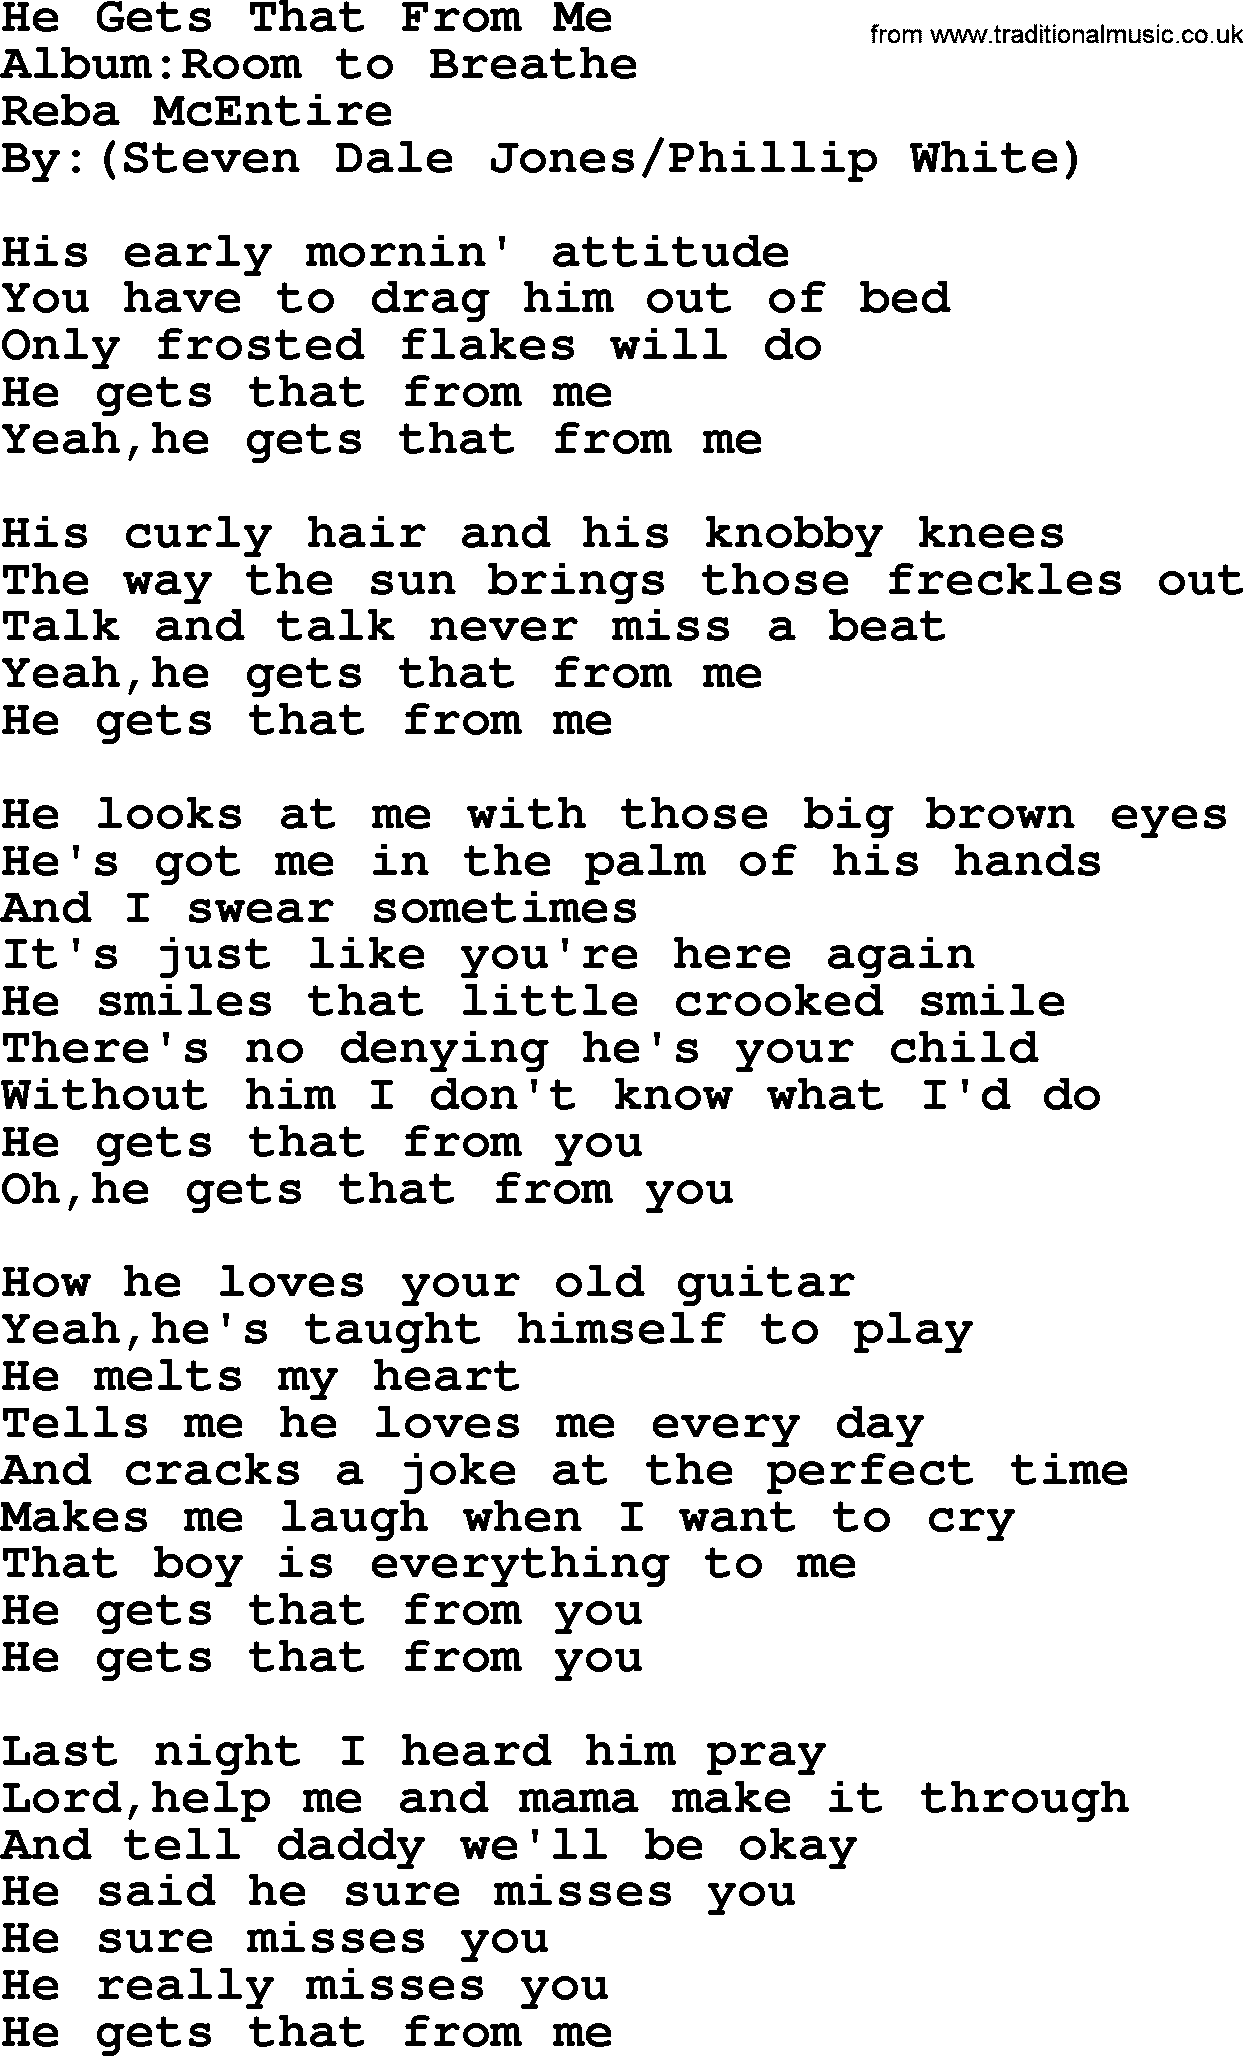 Reba Mcentire Song He Gets That From Me Lyrics